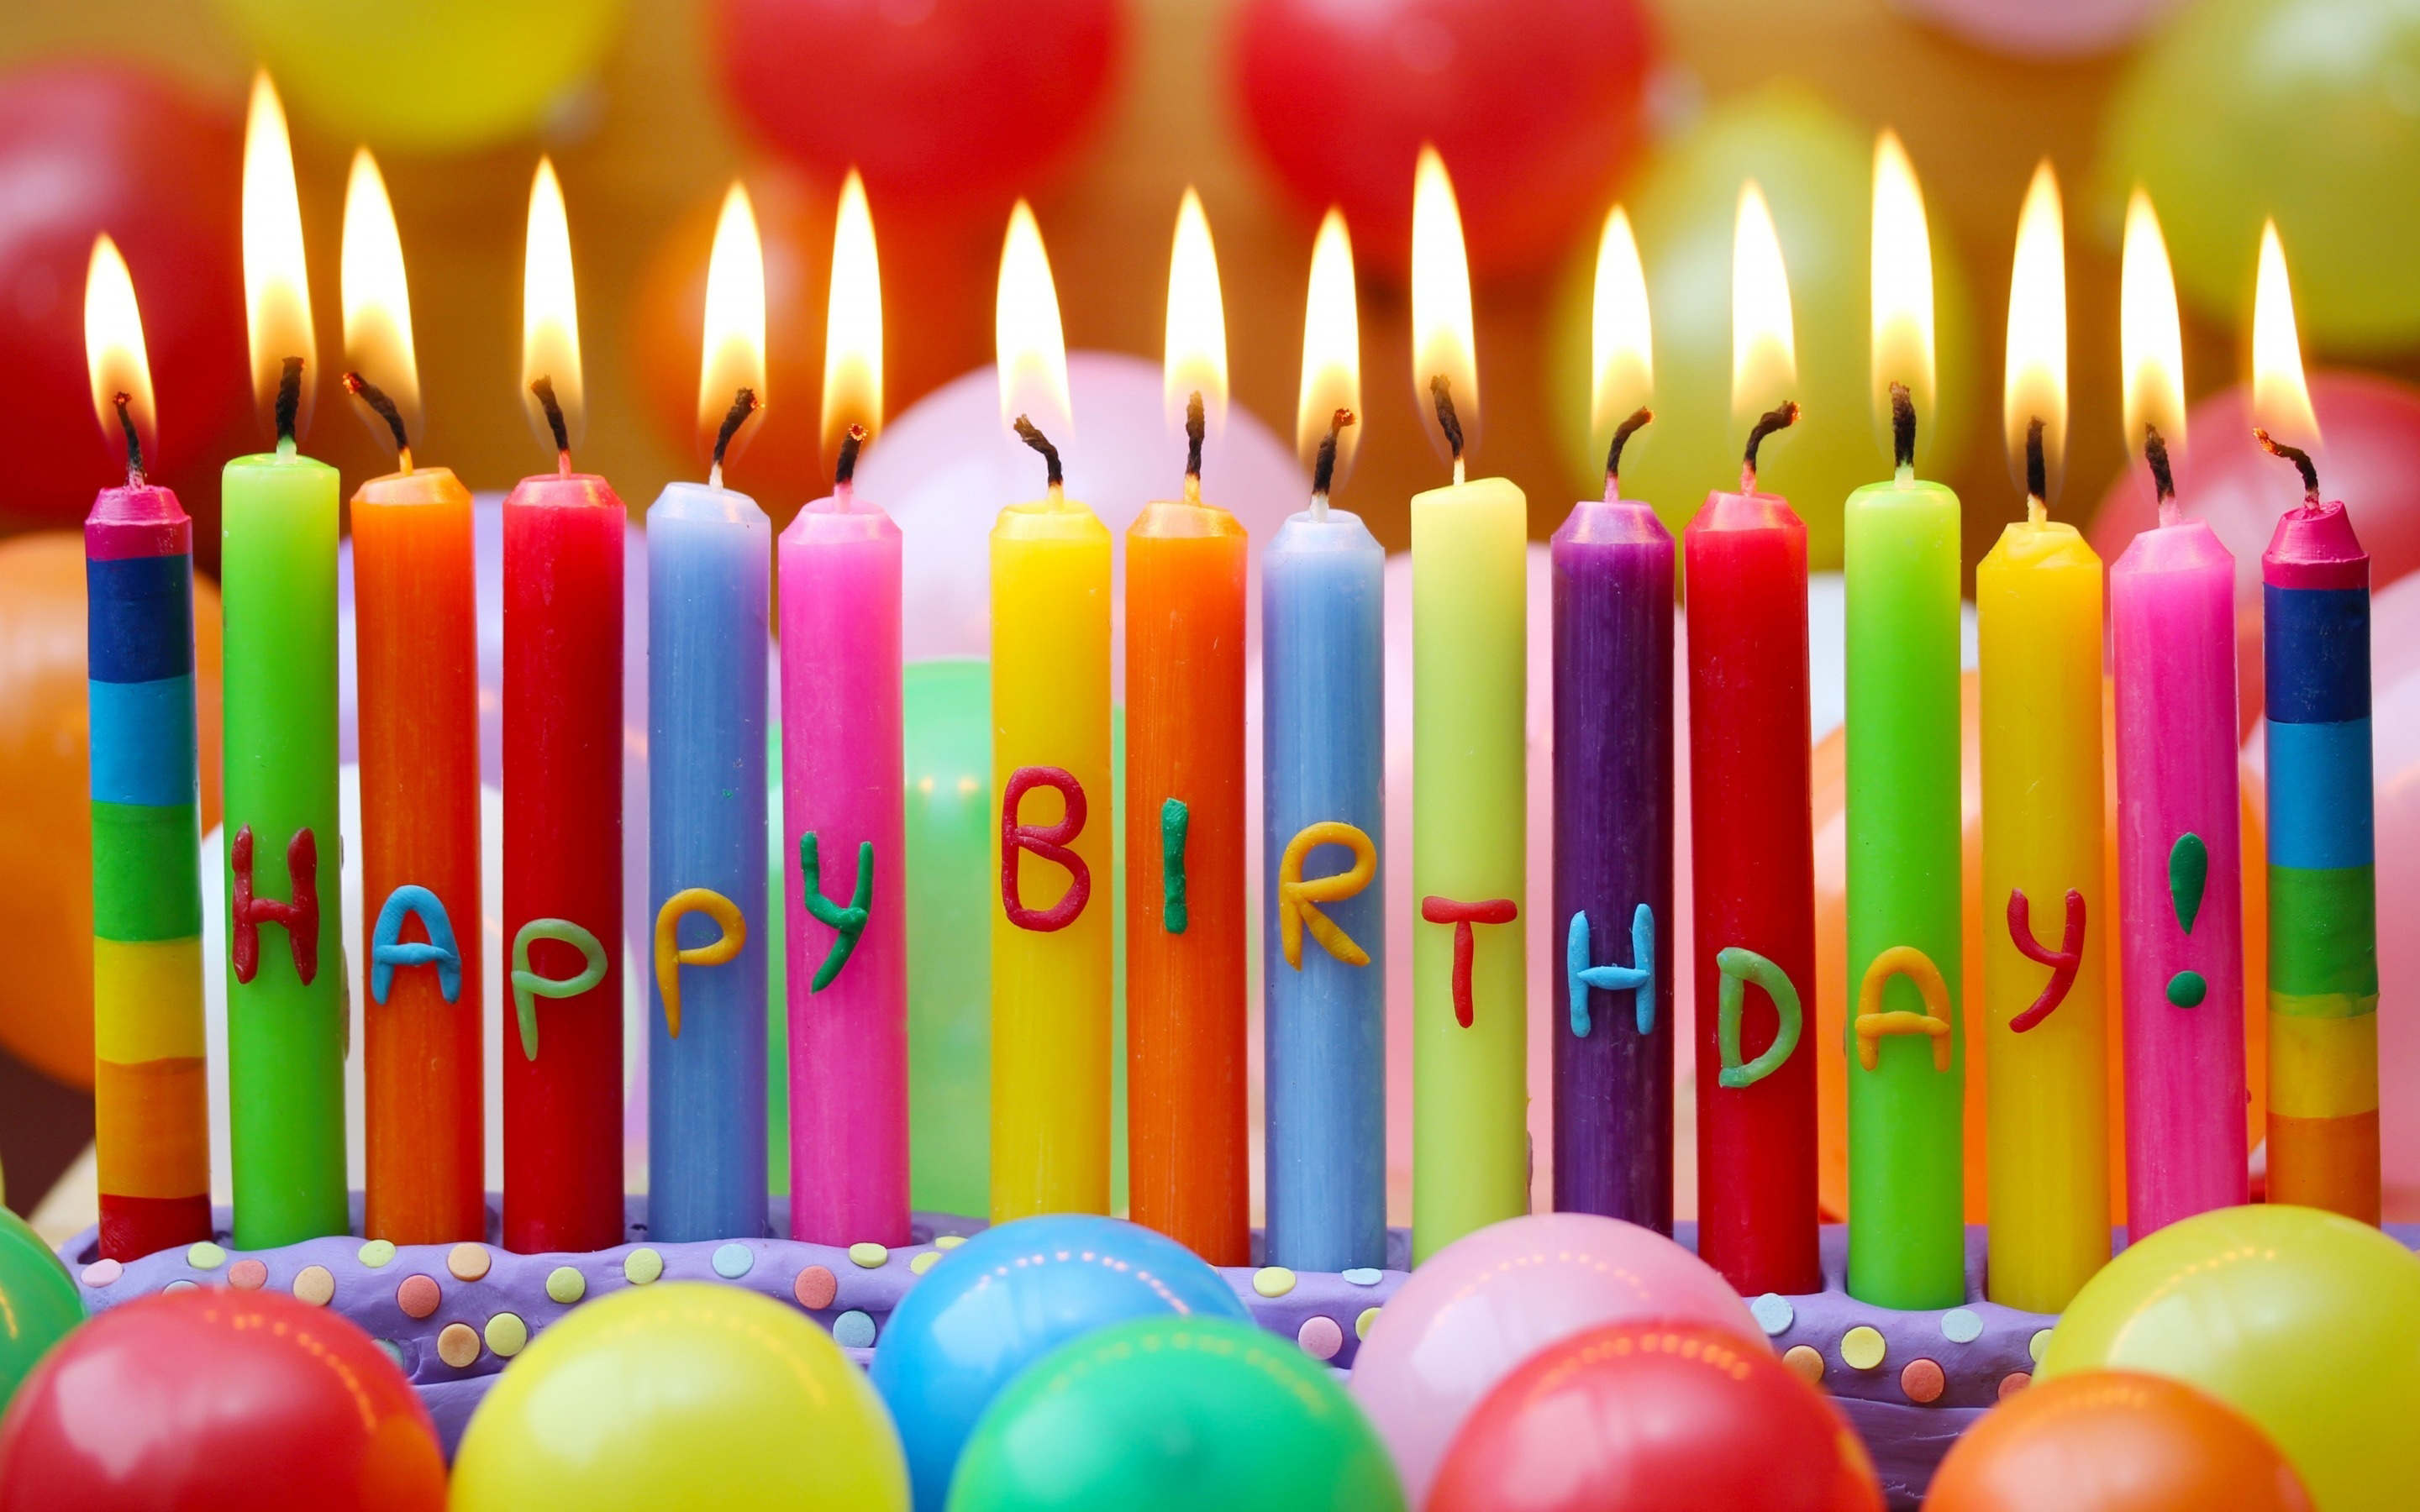 Happy Birthday Candles Wallpaper Background 49189 2880x1800 px